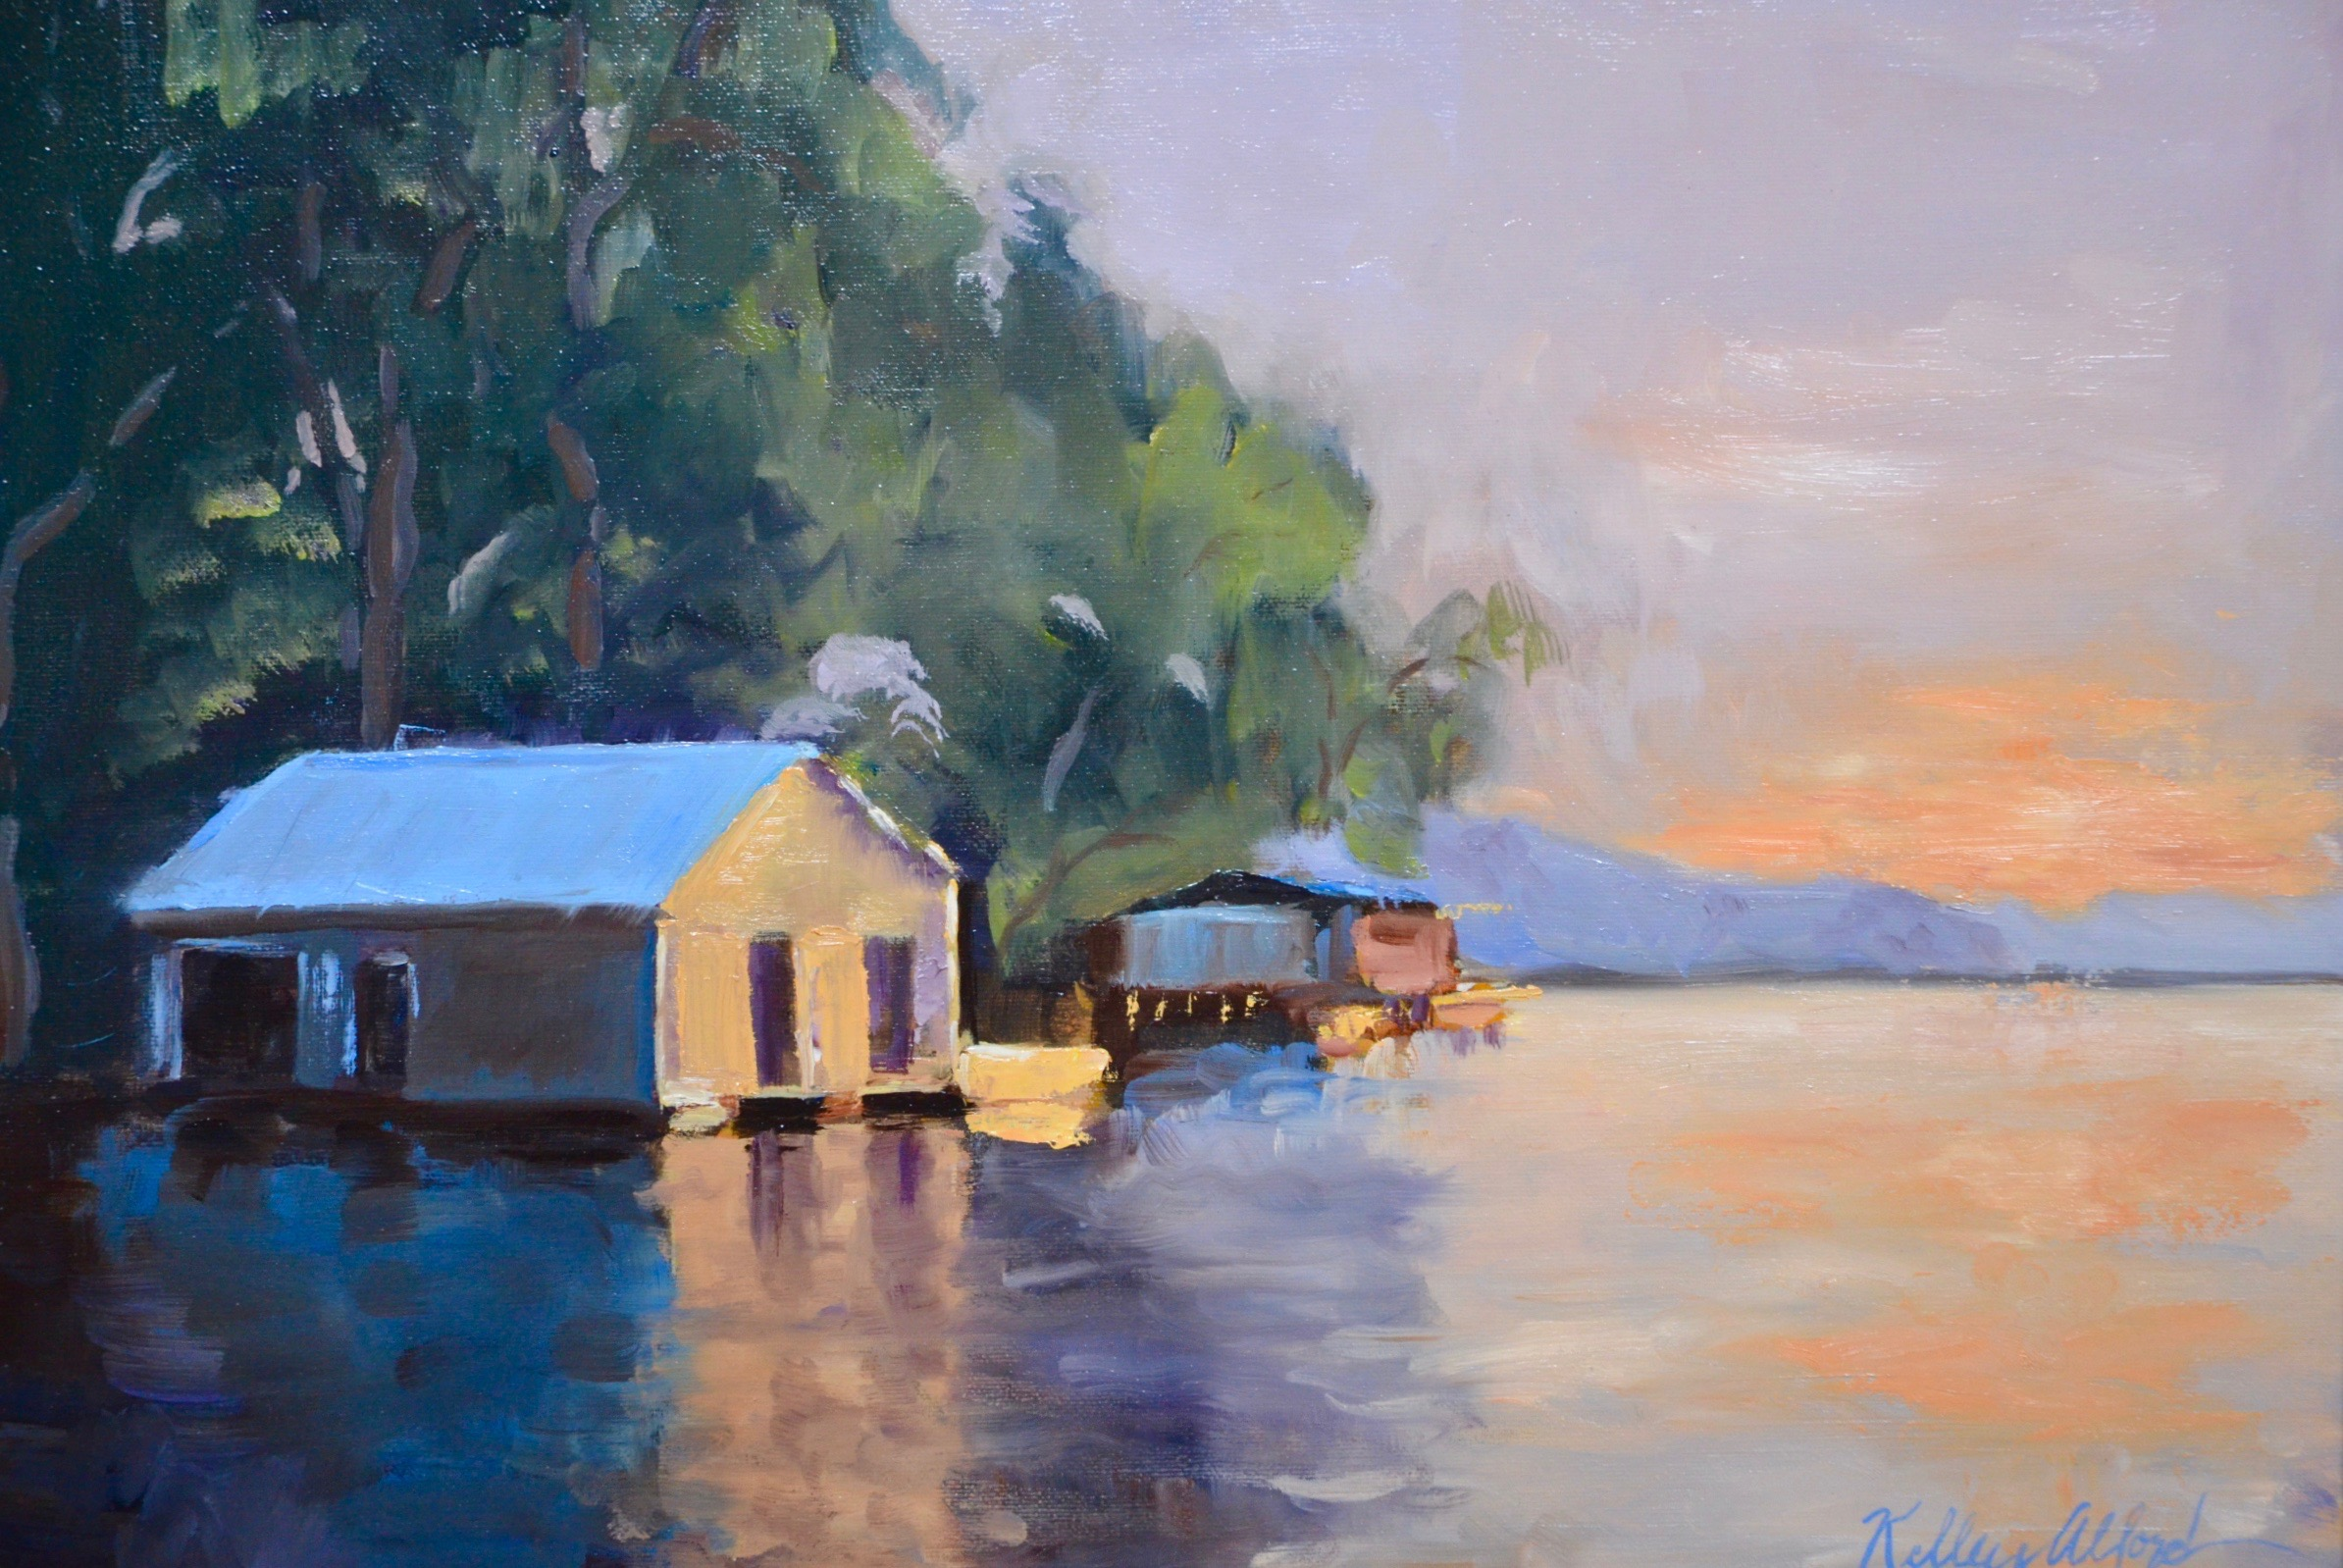 Kelly Alford, Bboathouse, OIlm 16 x 20,